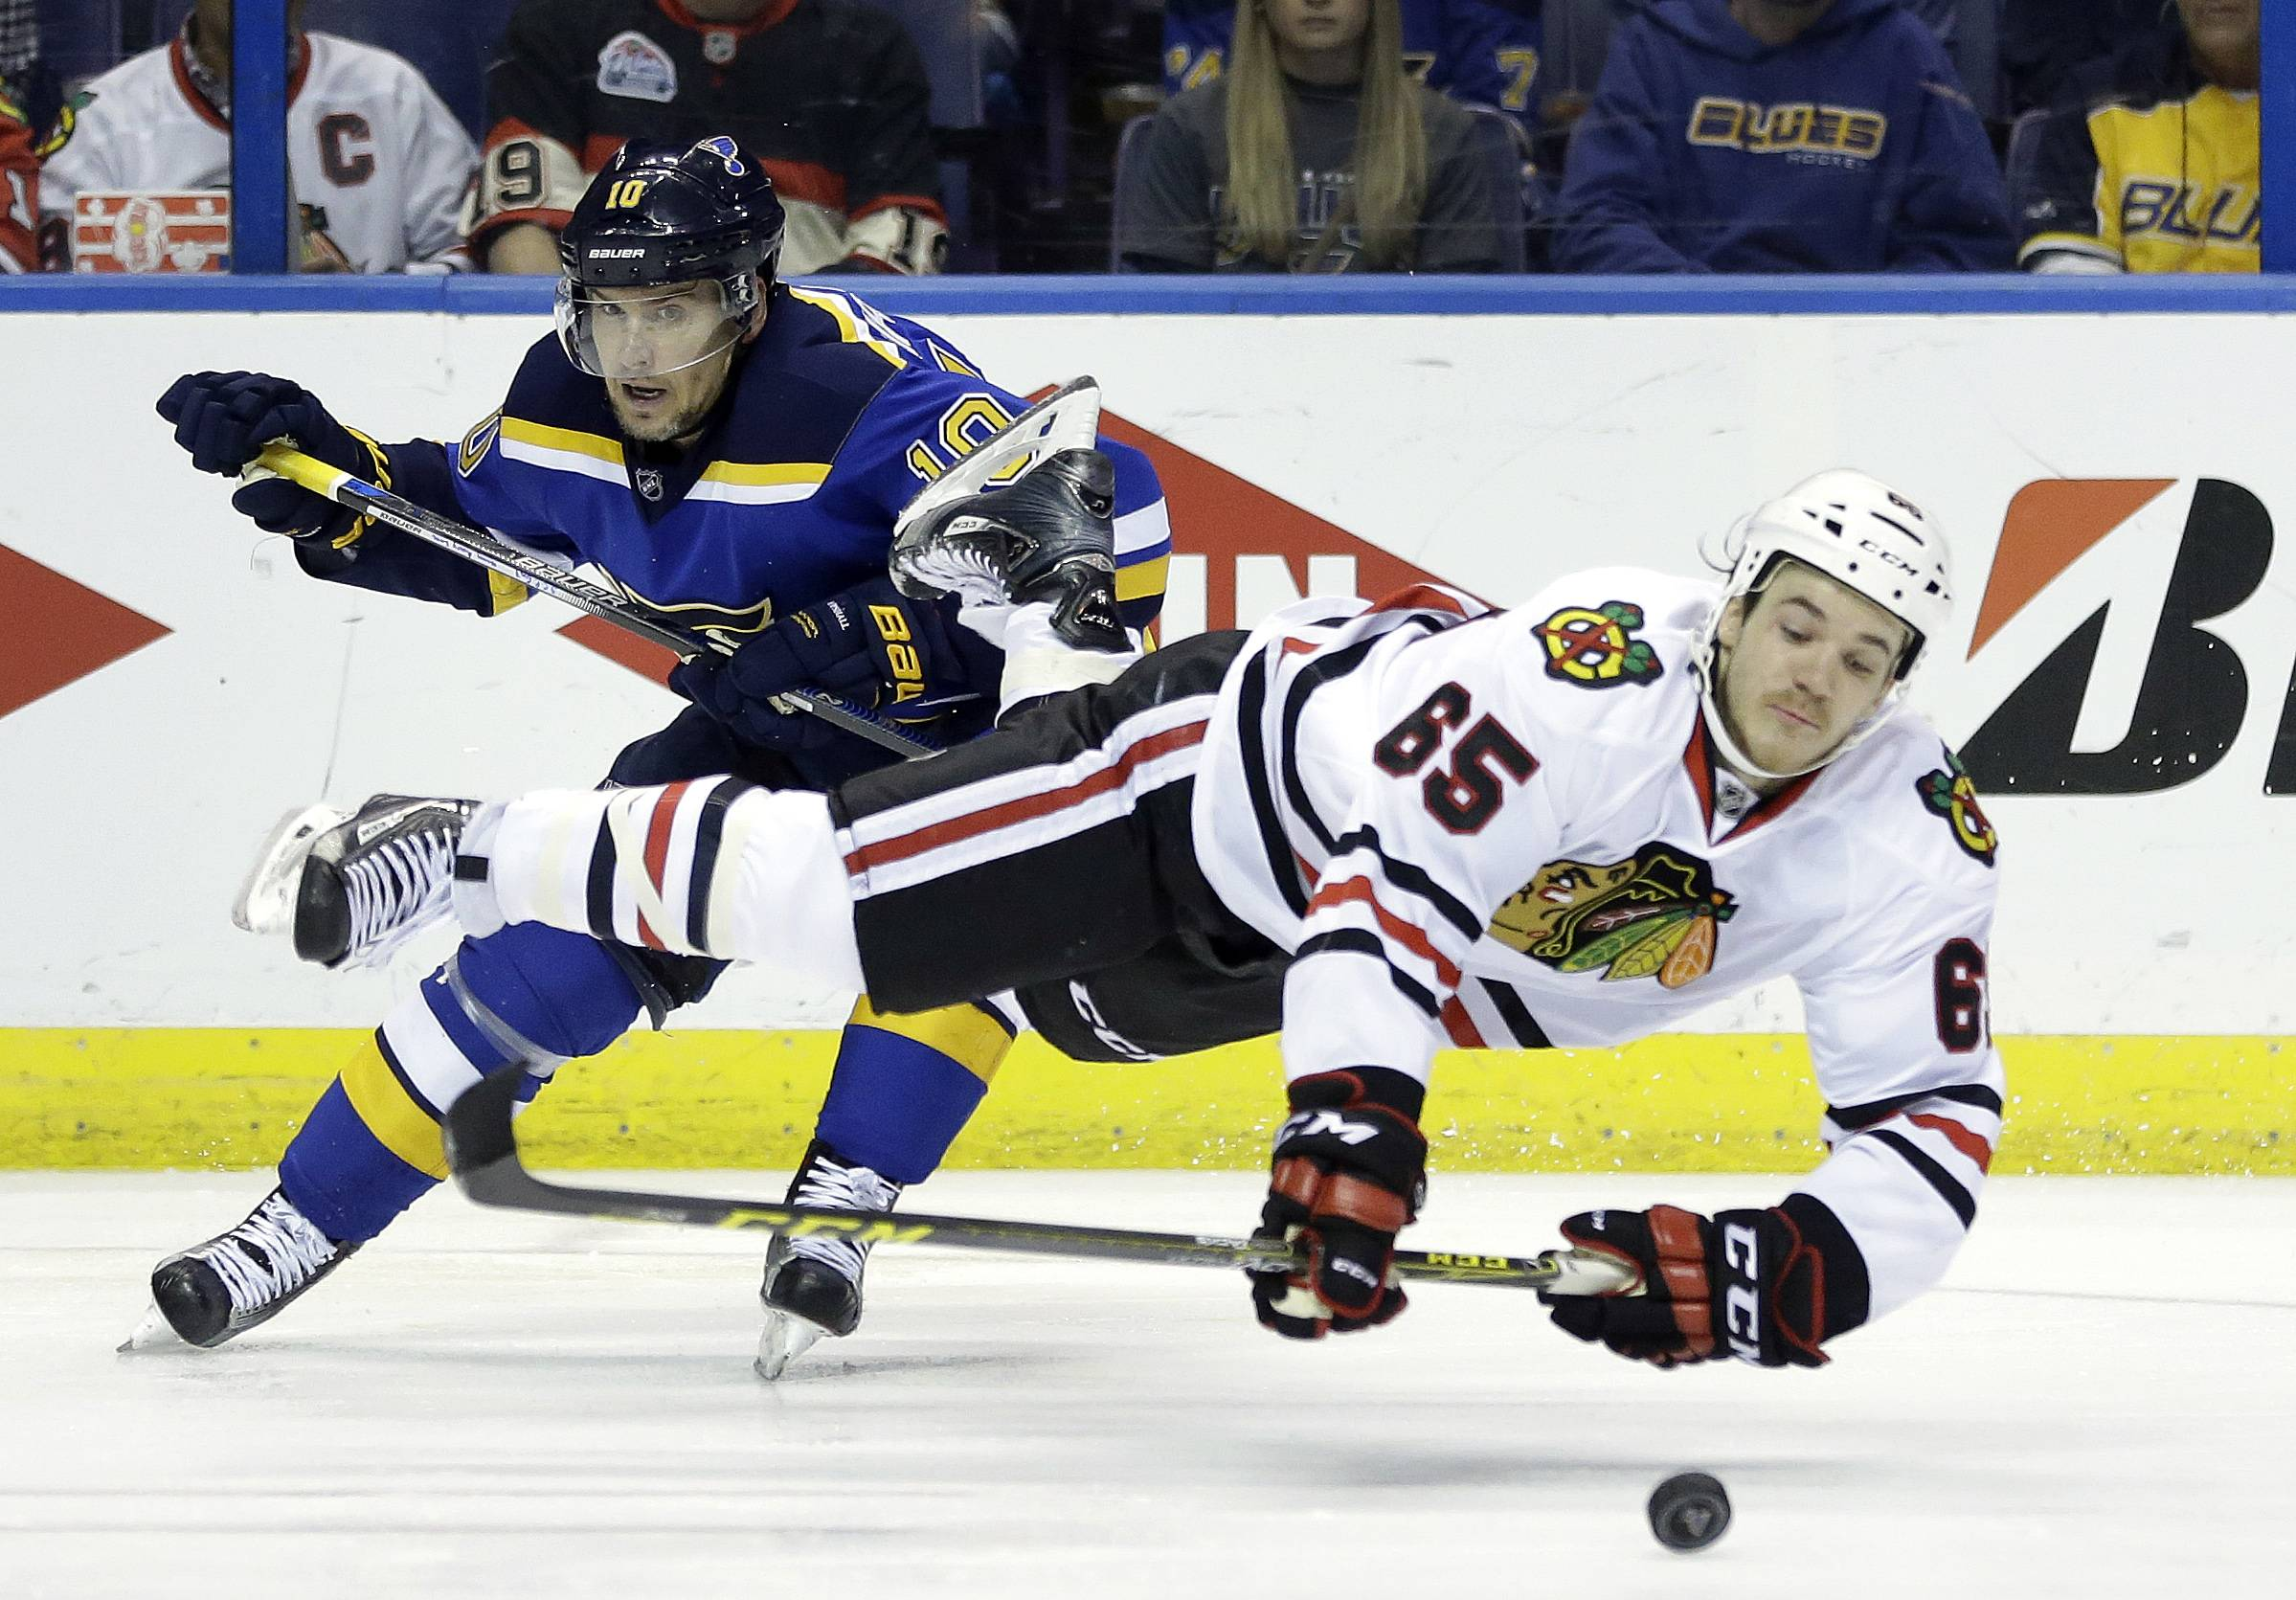 Andrew Shaw, sent flying after colliding with St. Louis Blues' Scottie Upshall while reaching for a puck during Game 7 of the first round of this year's Stanley Cup playoffs series Monday, was traded Friday by the Chicago Blackhawks to the Montreal Canadiens for two draft picks. (AP Photo/Jeff Roberson)